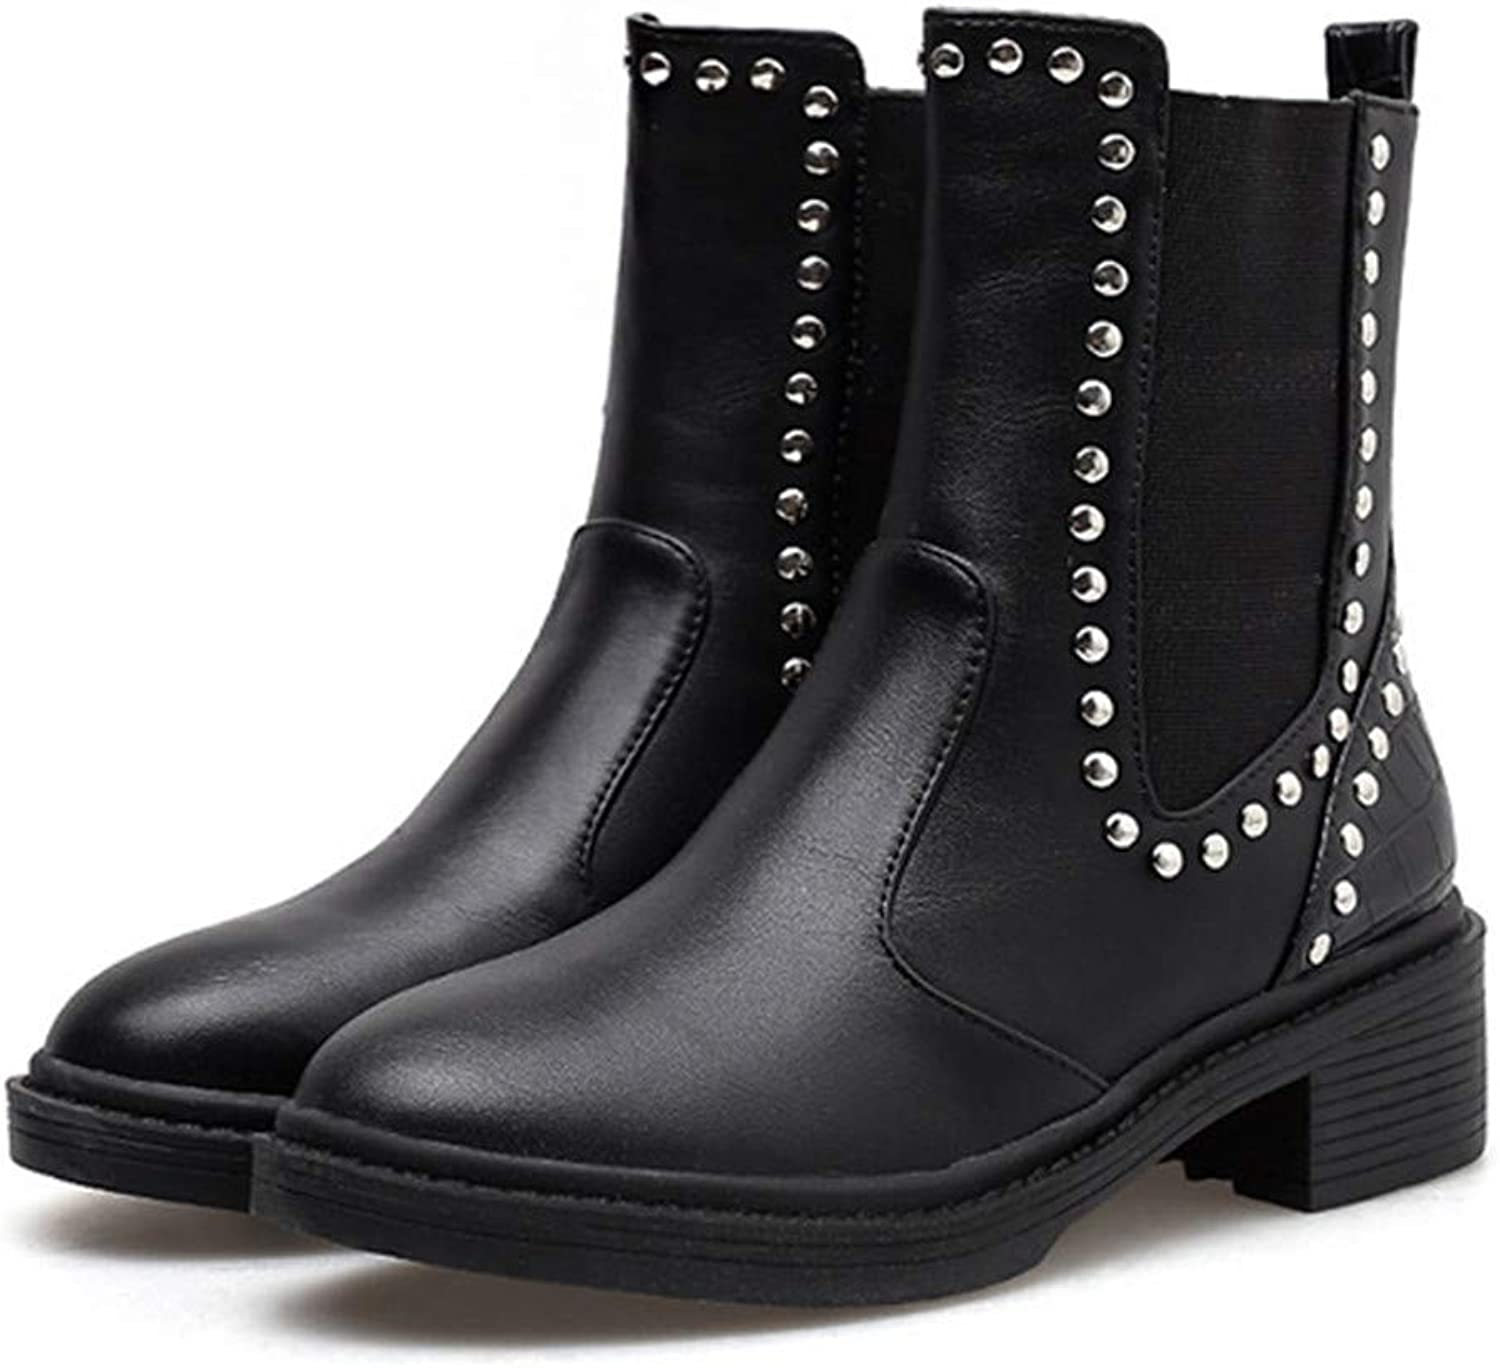 Vintage Rivets Chelsea Boots Women Solid Black Ankle Boots for Women Med Heel Black Martin Boots Women SWE0555